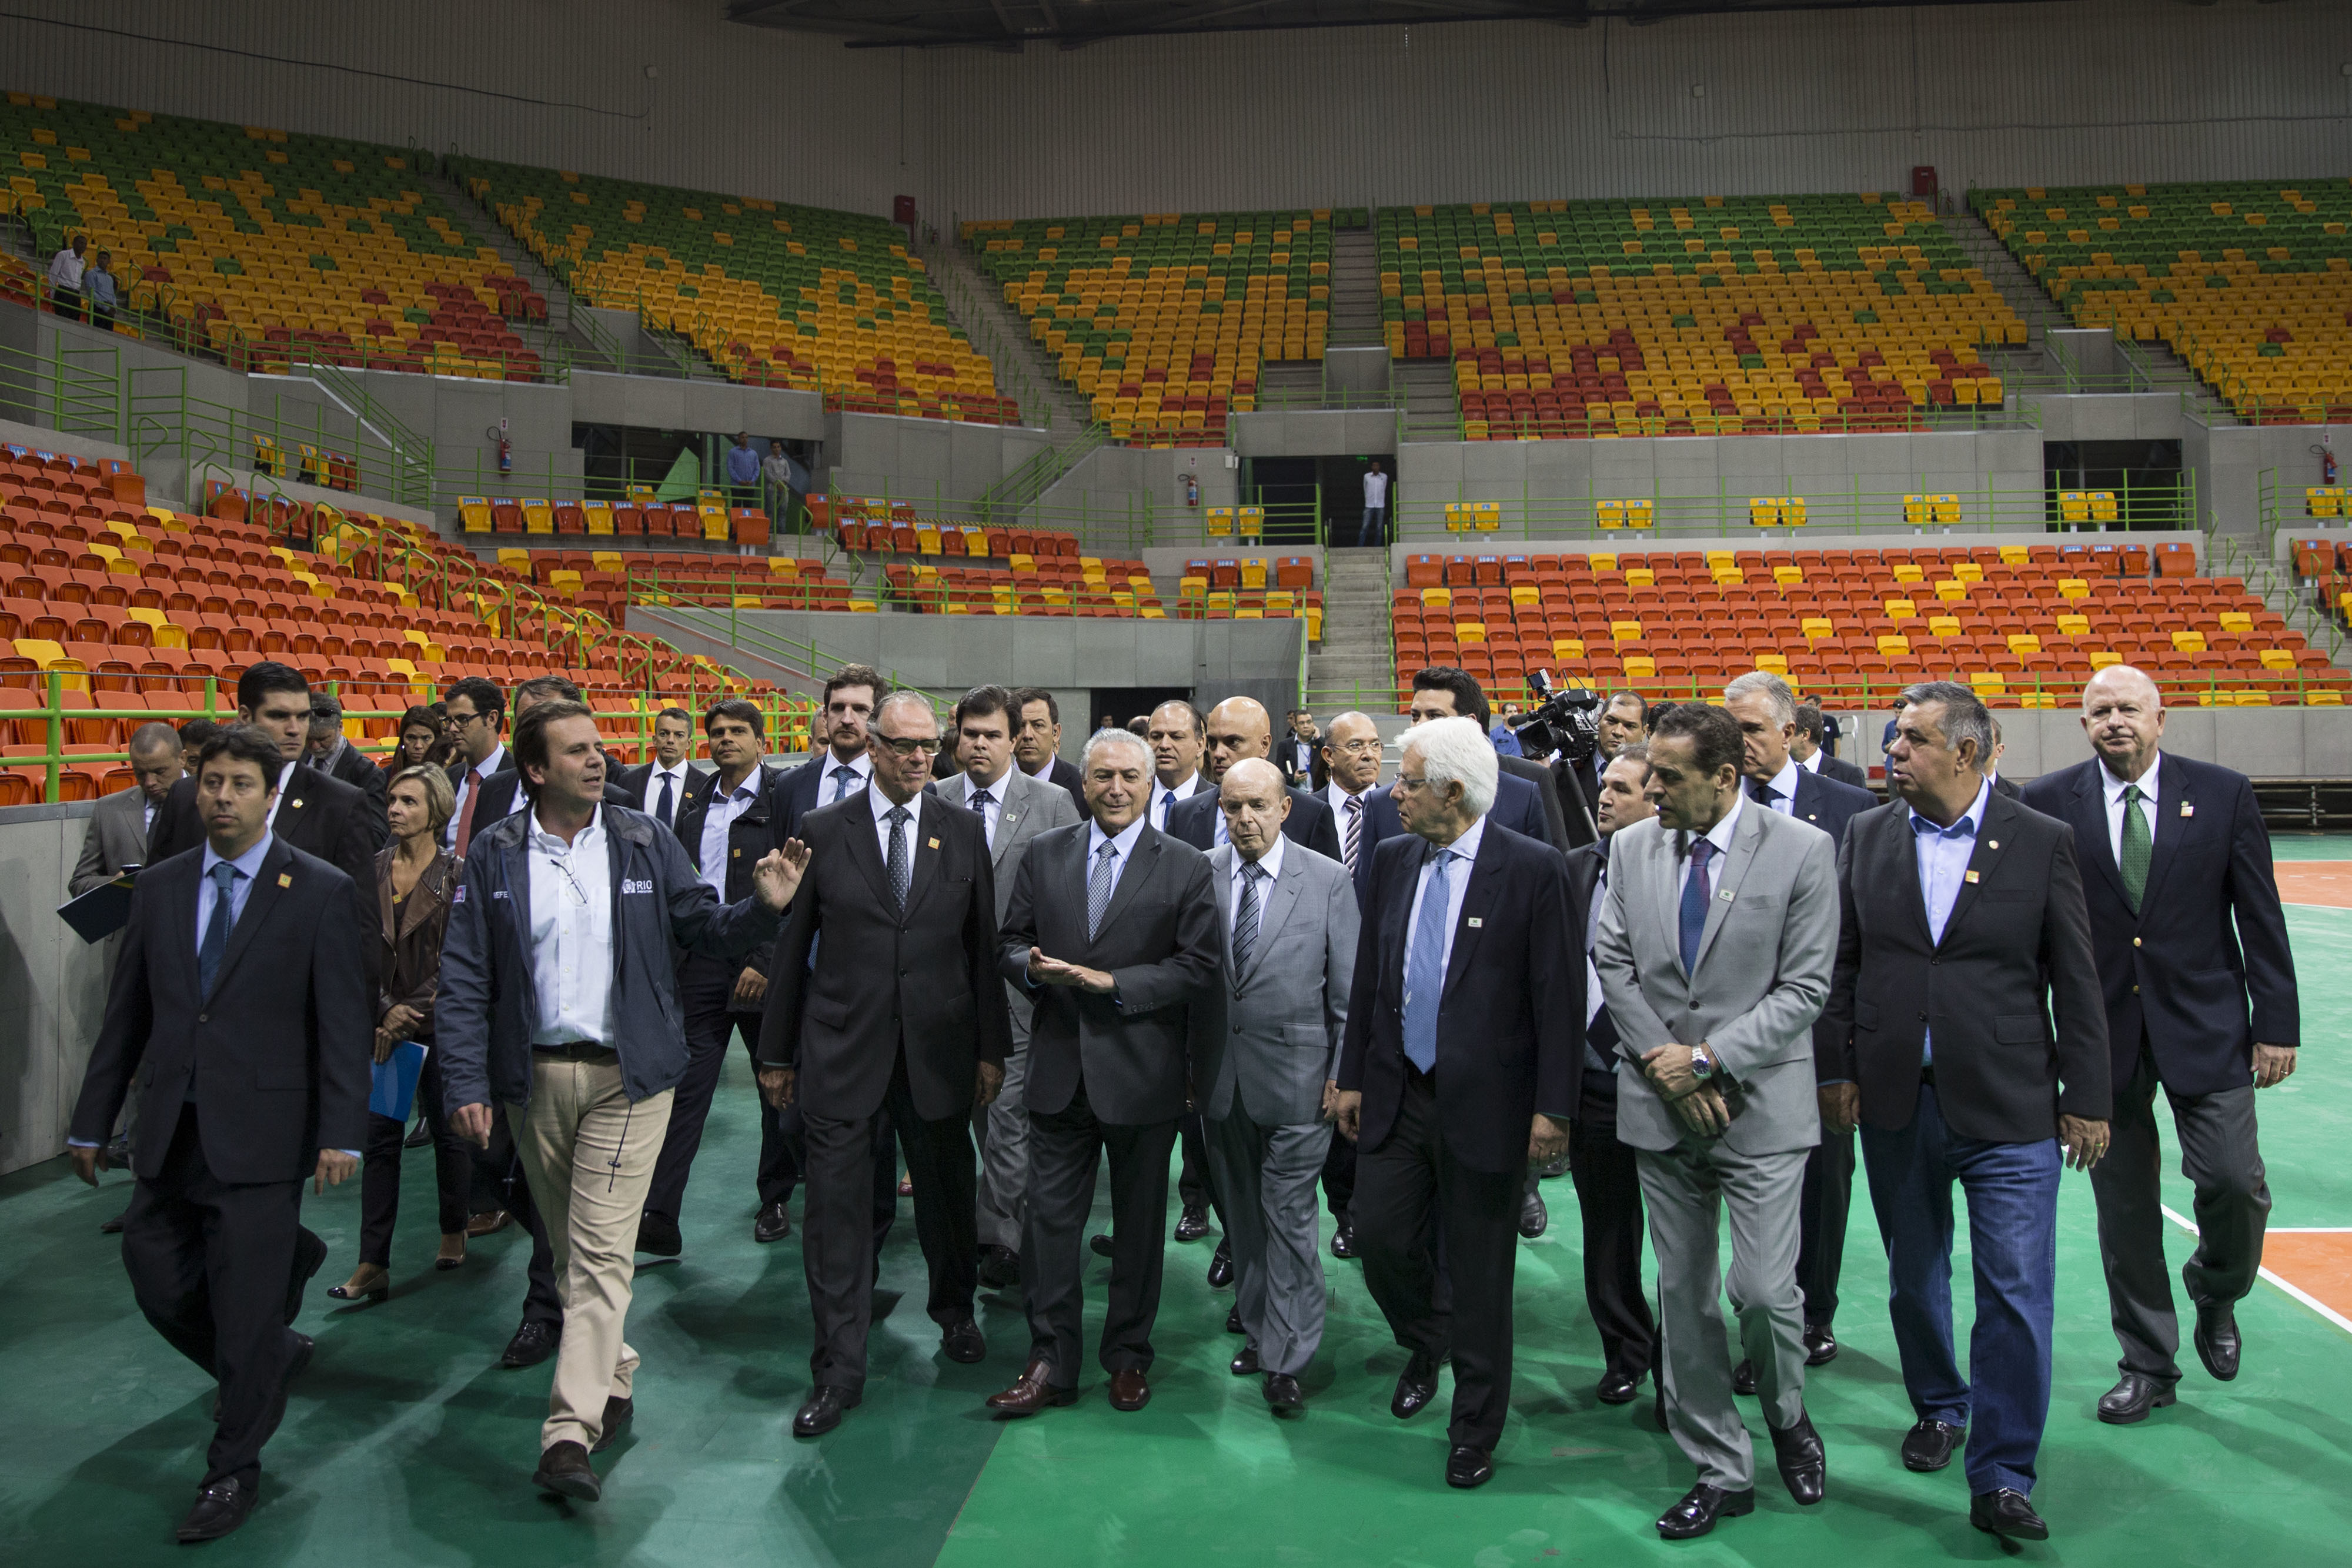 Brazil's interim President Michel Temer, center, walks with officials during a visit to the Olympic Park in Rio de Janeiro, Brazil, Tuesday, June 14, 2016. In recent weeks Temer has stepped up his pledges of support for the Olympic games, which have been